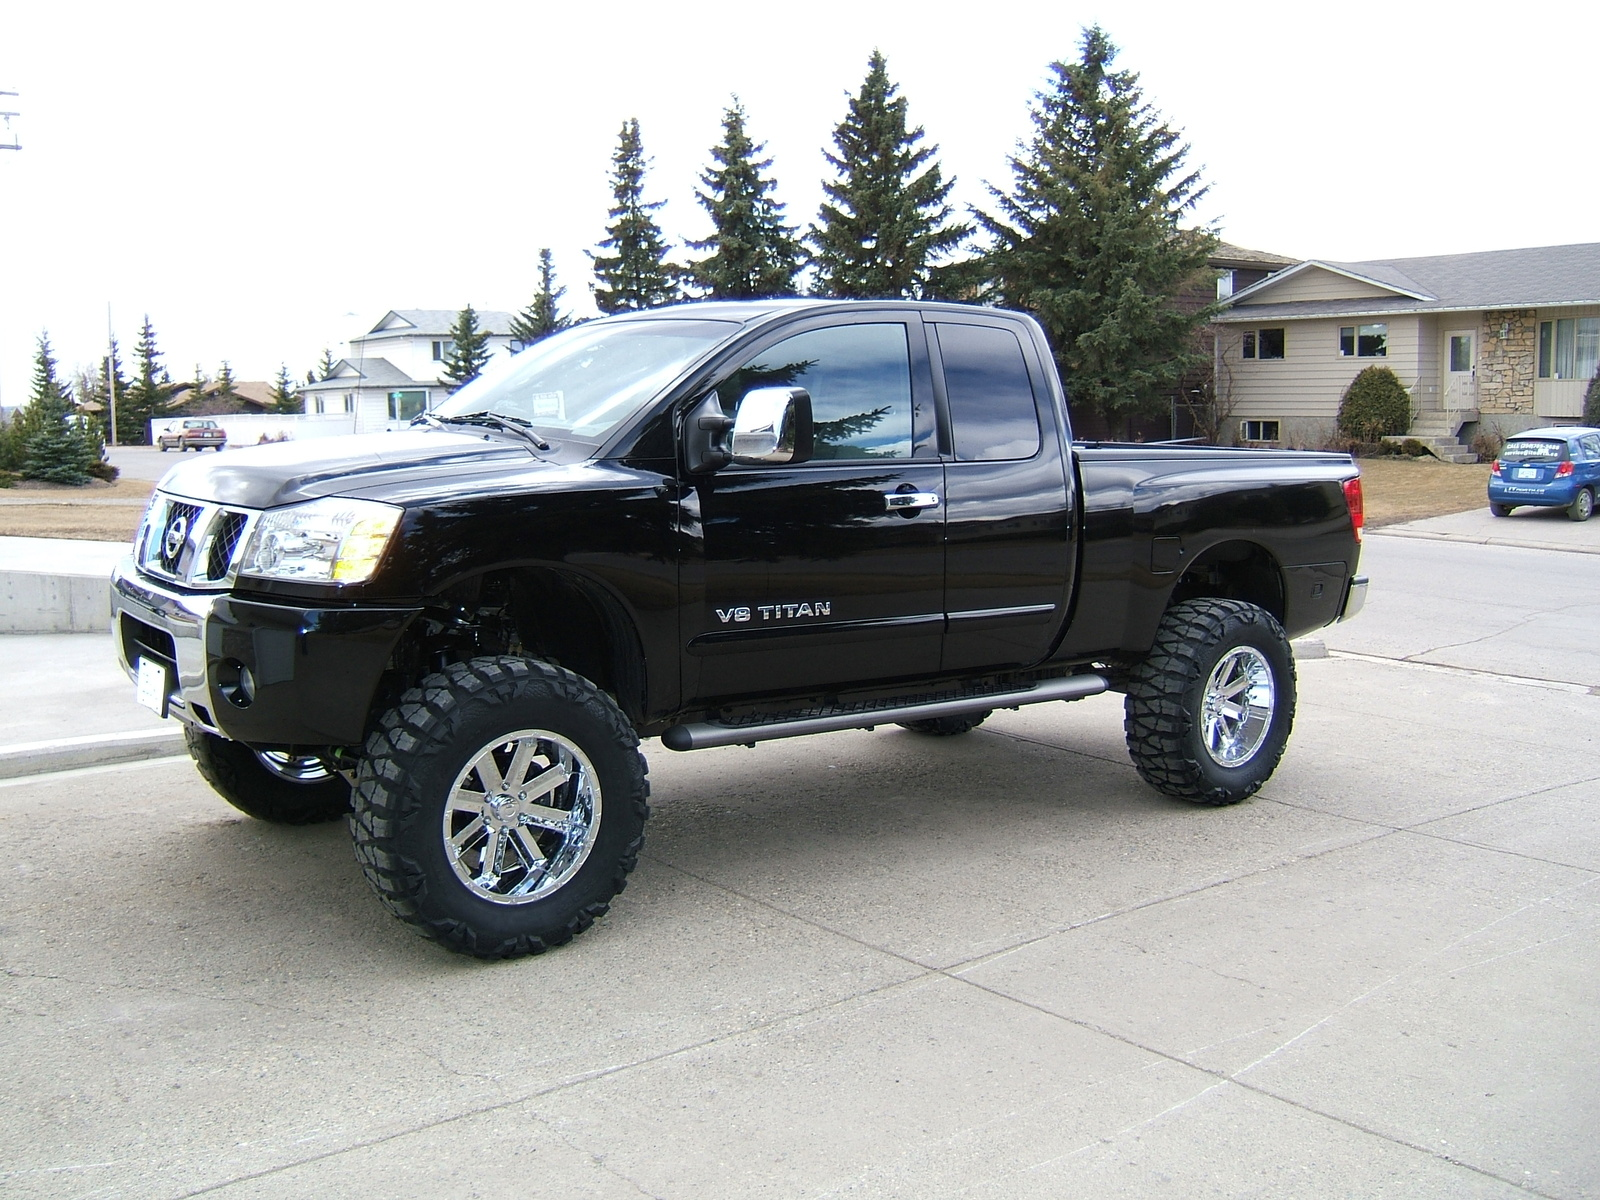 nissan titan king cab 4x4 nissan titan crew videos car photos nissan titan king cab 4x4 nissan. Black Bedroom Furniture Sets. Home Design Ideas